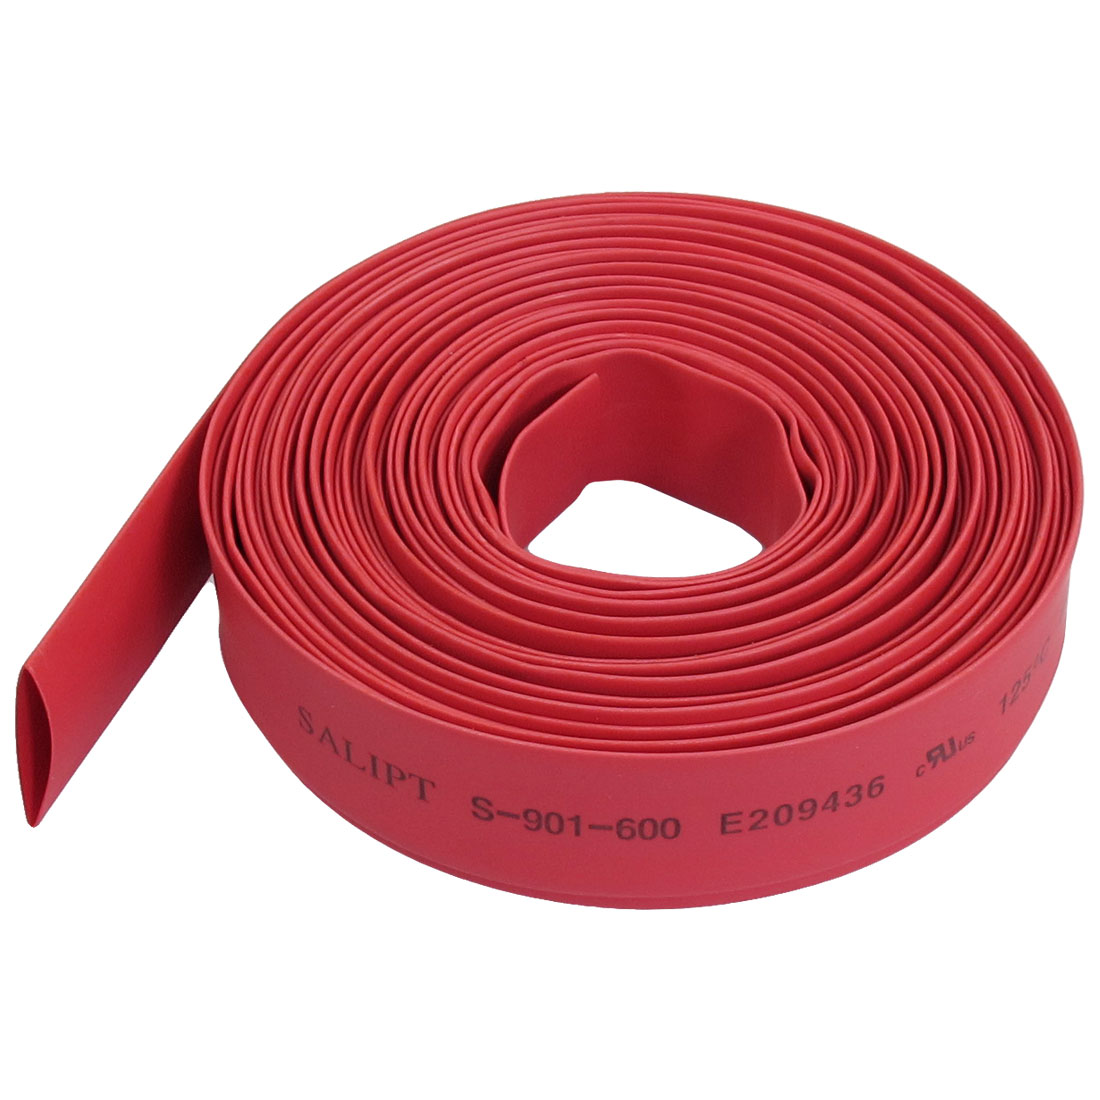 Ratio 2:1 10mm Dia Red Polyolefin Heat Shrinkable Tube Tubing 6 Meters